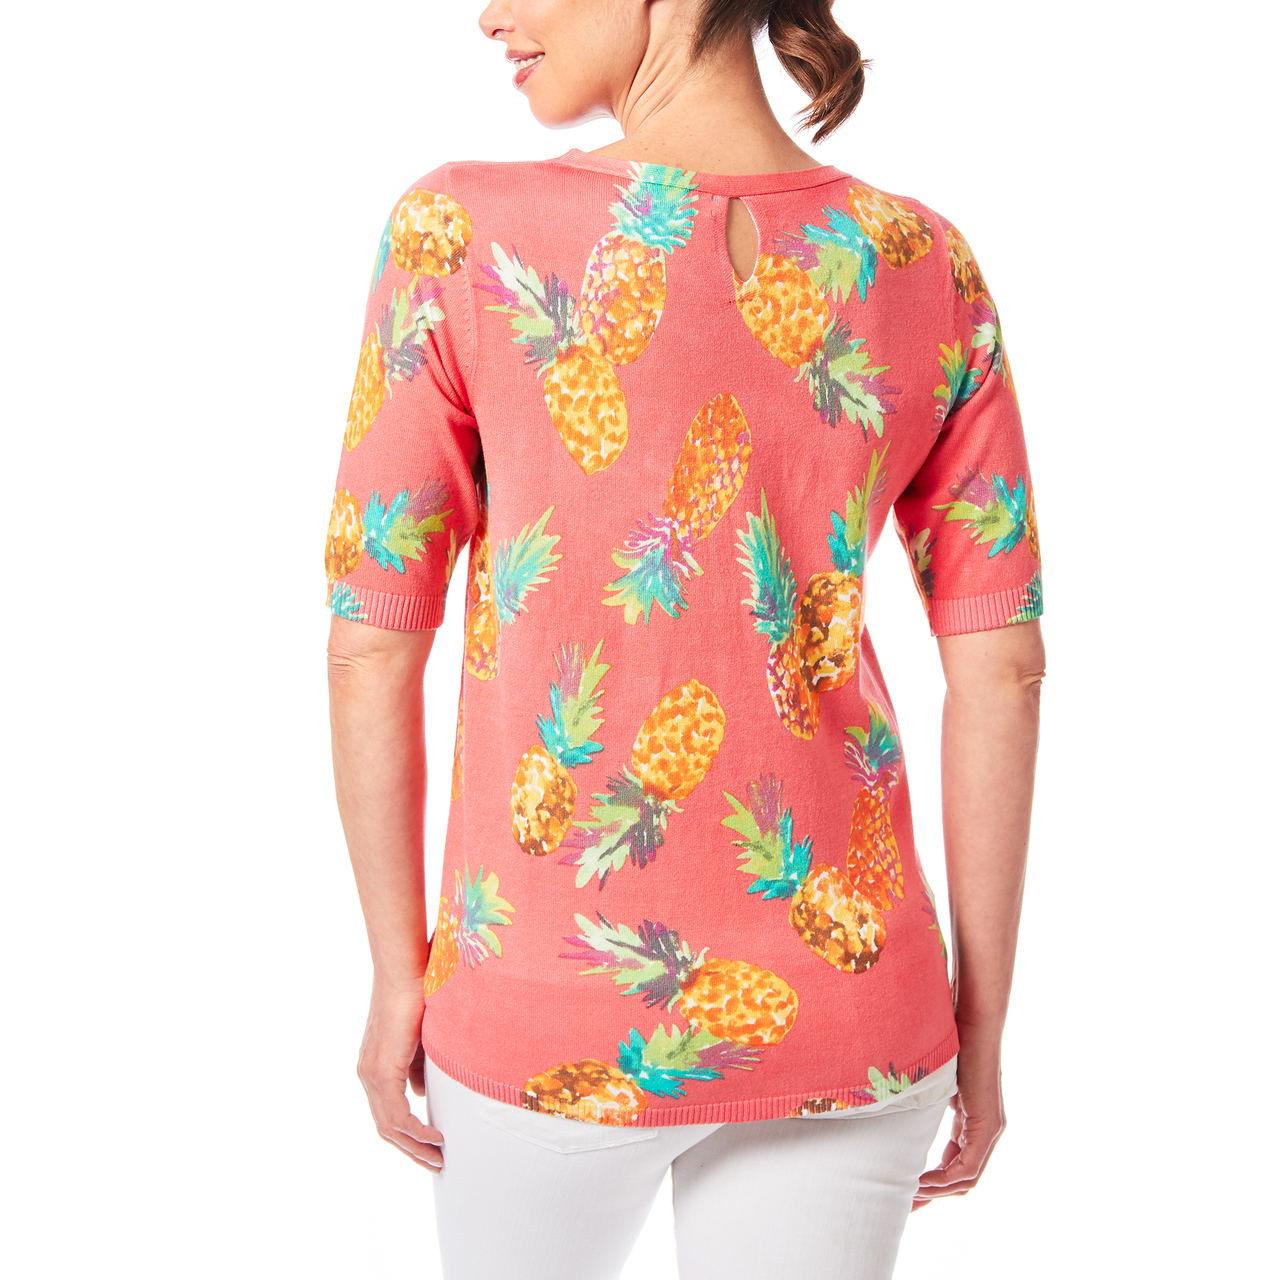 Aline Sweater With Keyhole Back In Pineapple Print